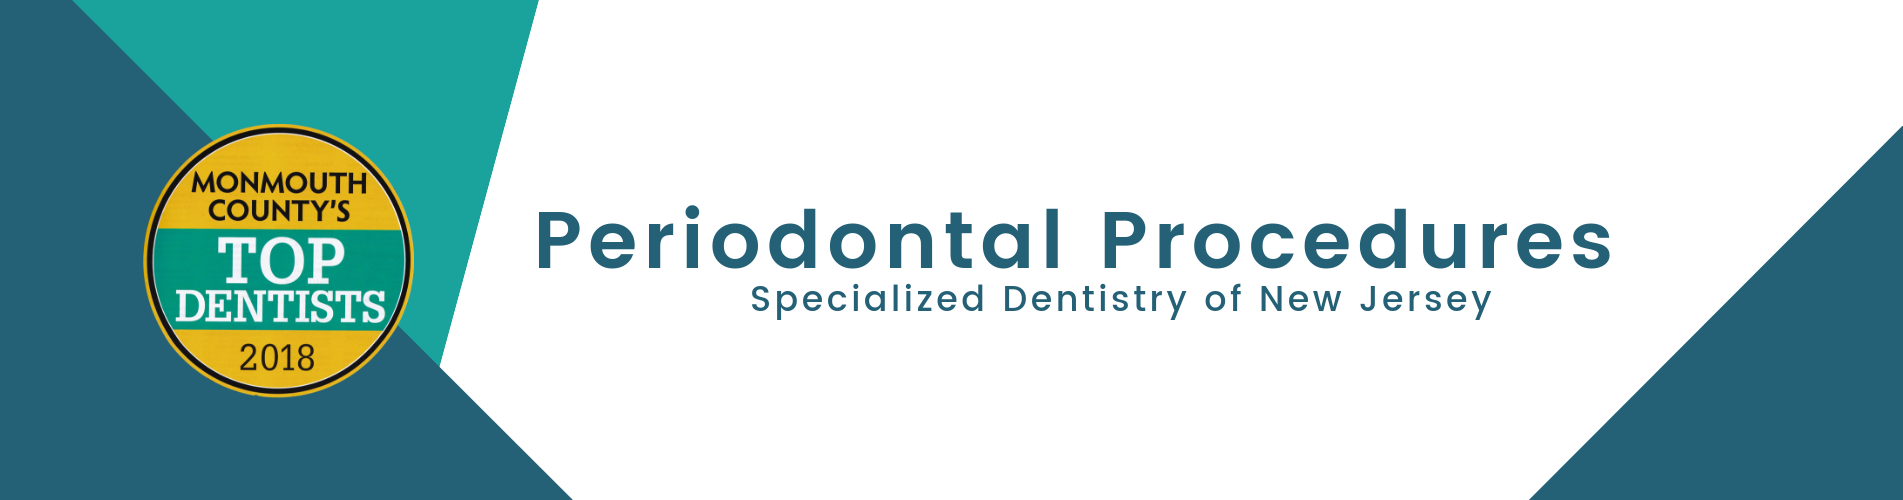 periodontal procedures from specialized dentistry of new jersey